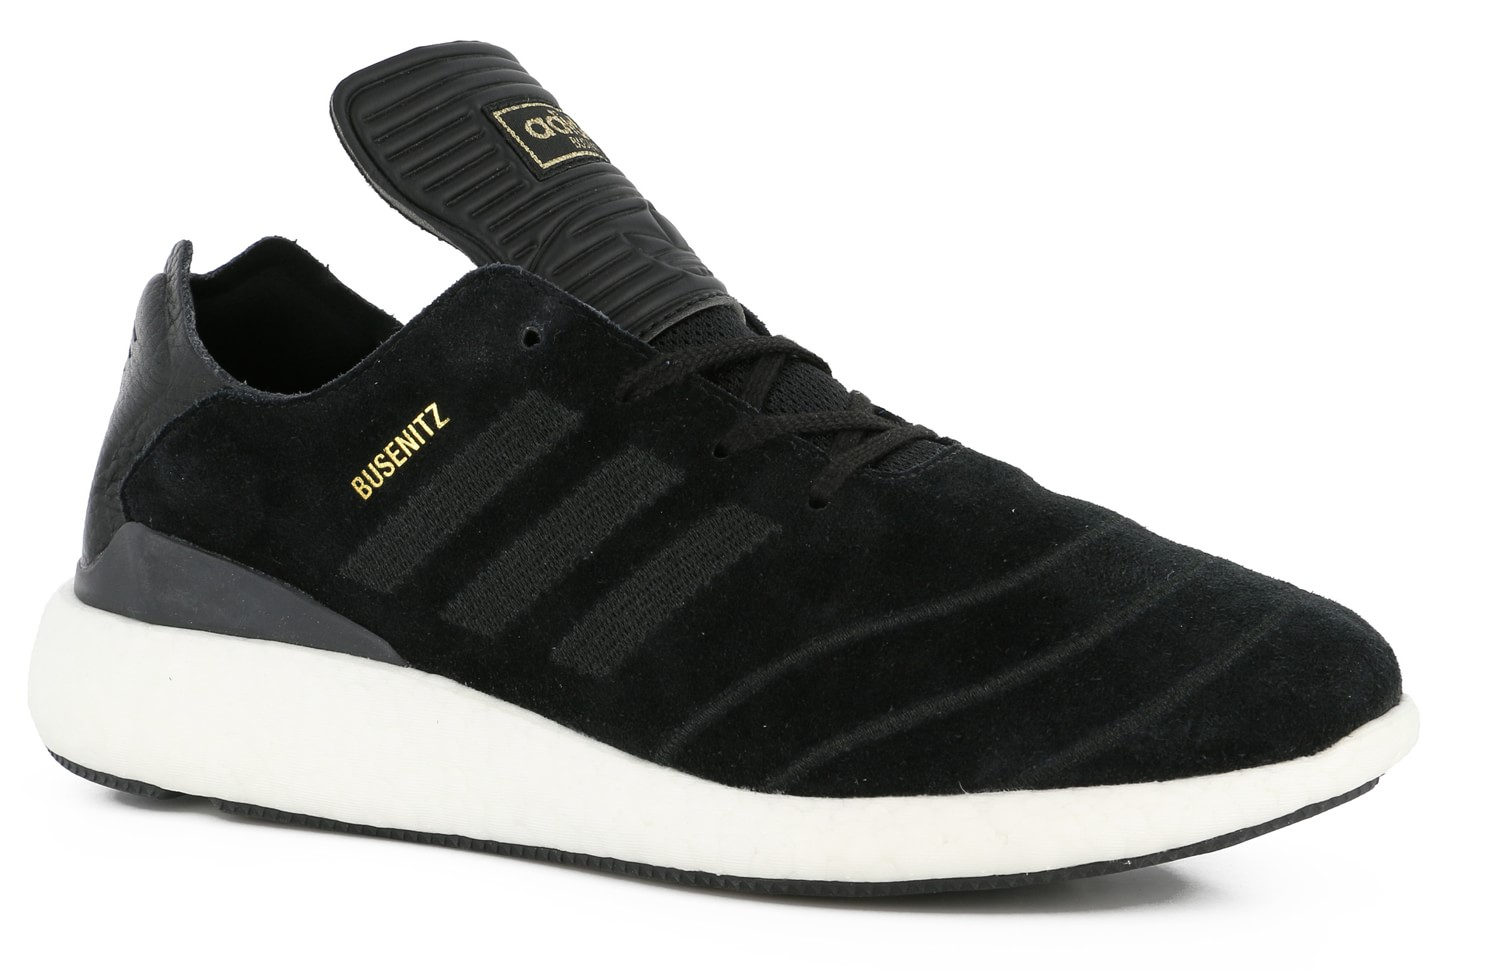 finest selection e8923 b2f8c ... Skateboarding accounts like Tactics. What if the adidas Busentiz and  Pure Boost Had a Baby